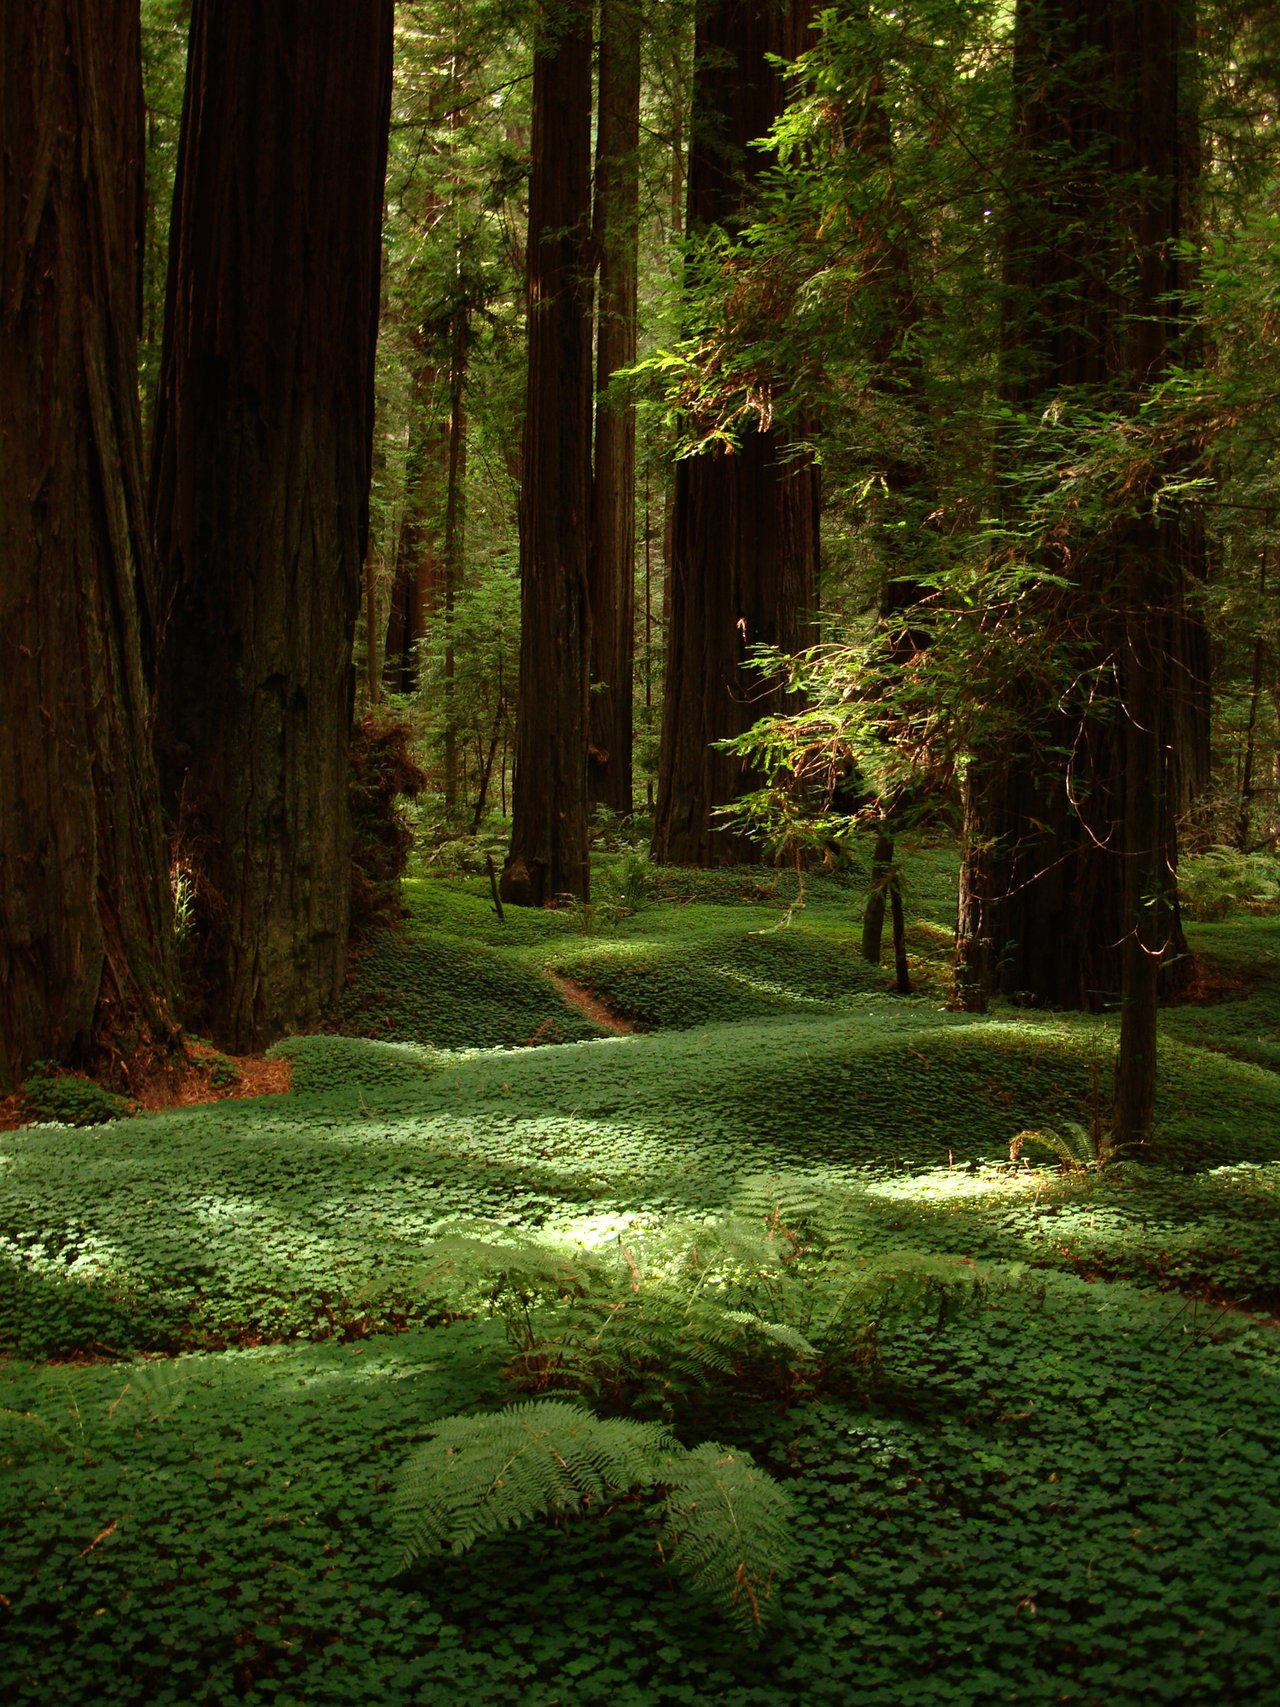 Clover covered forest floor beneath the Redwoods